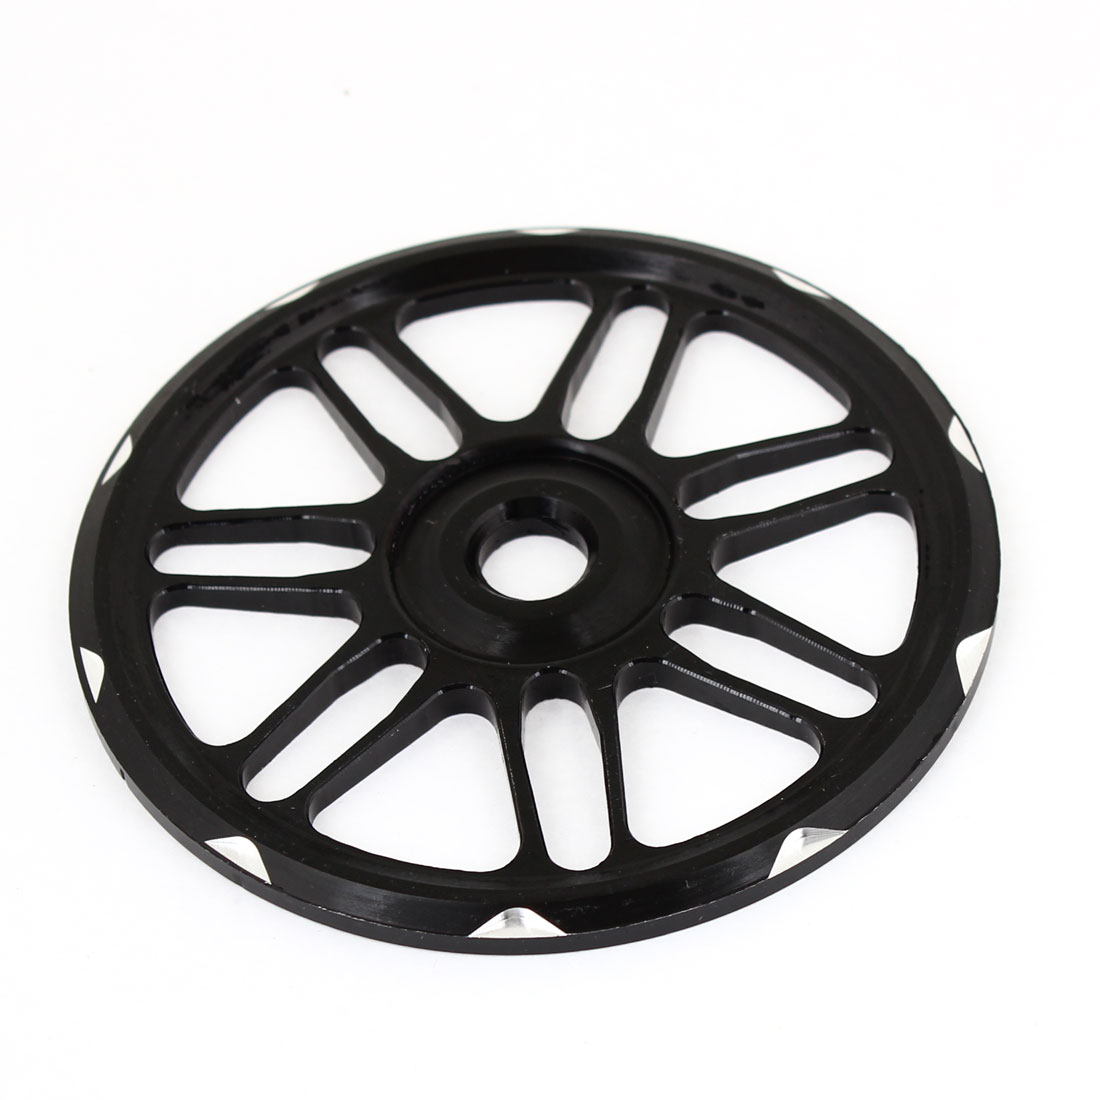 Motorcycle Black Metal Wheels Pattern Decorative Fan Cover